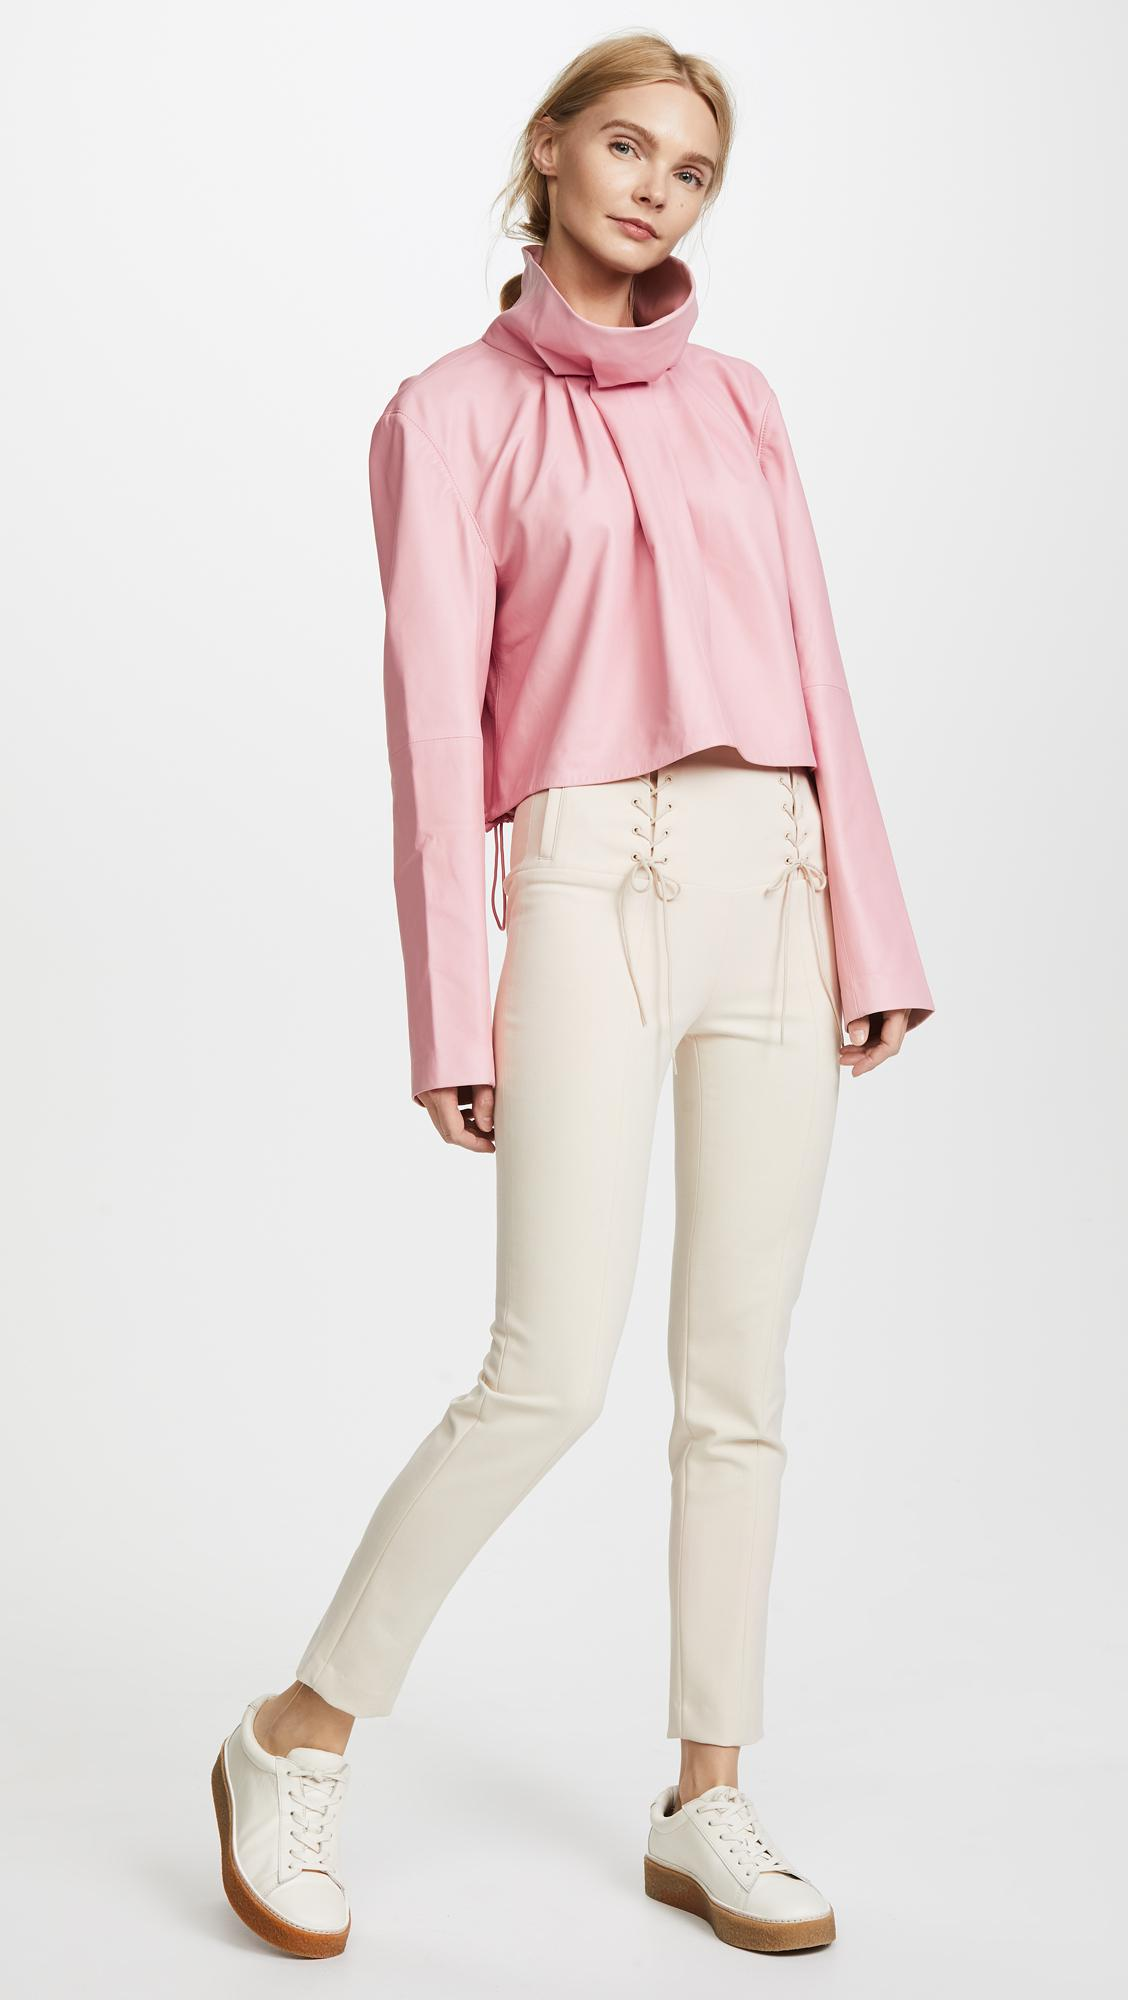 Tibi Leather Sculpted Crop Top in Soft Pink (Pink)